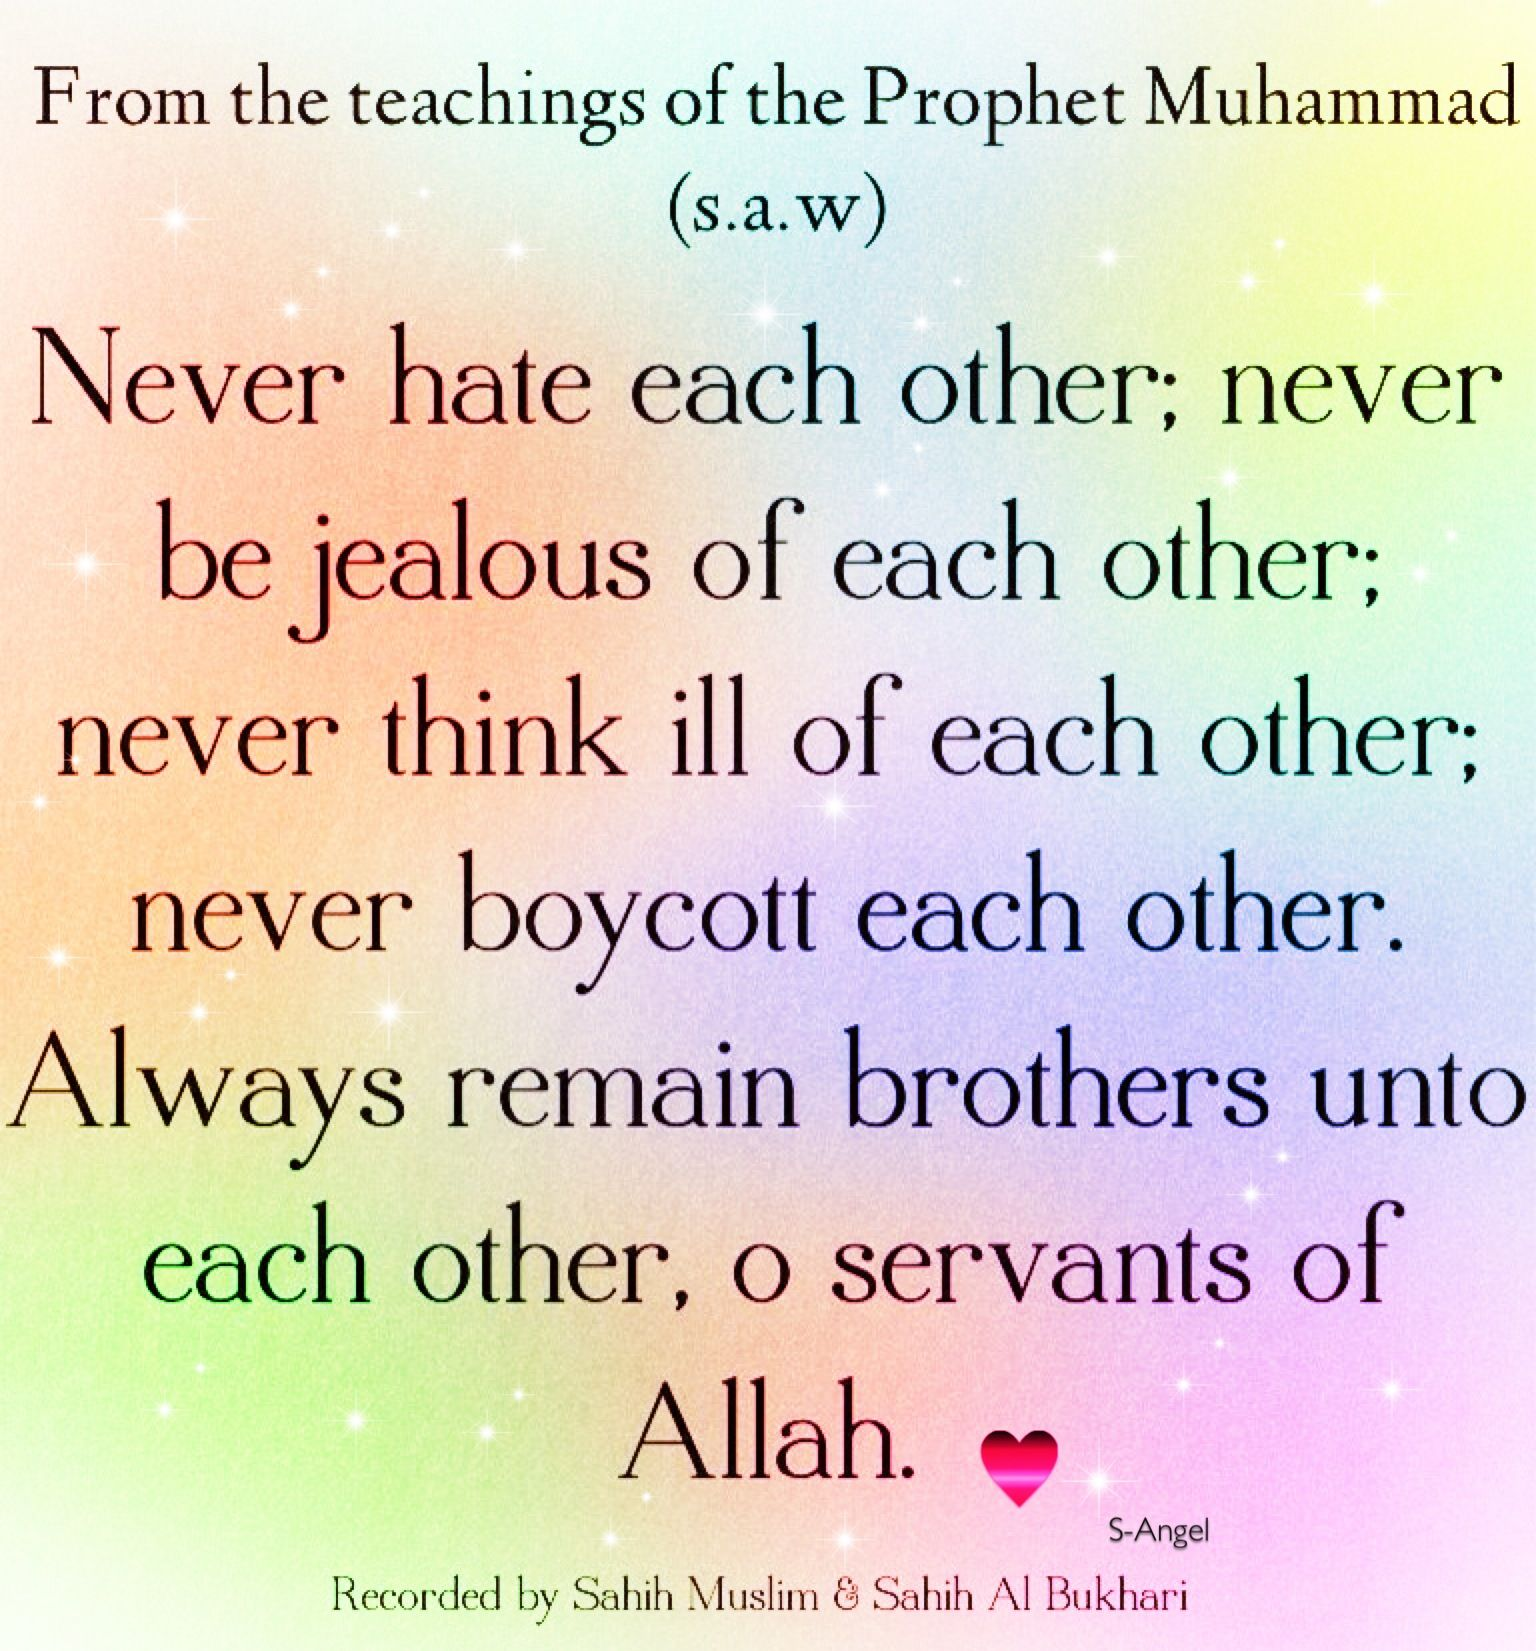 O servants of Allah love your brothers and sisters for